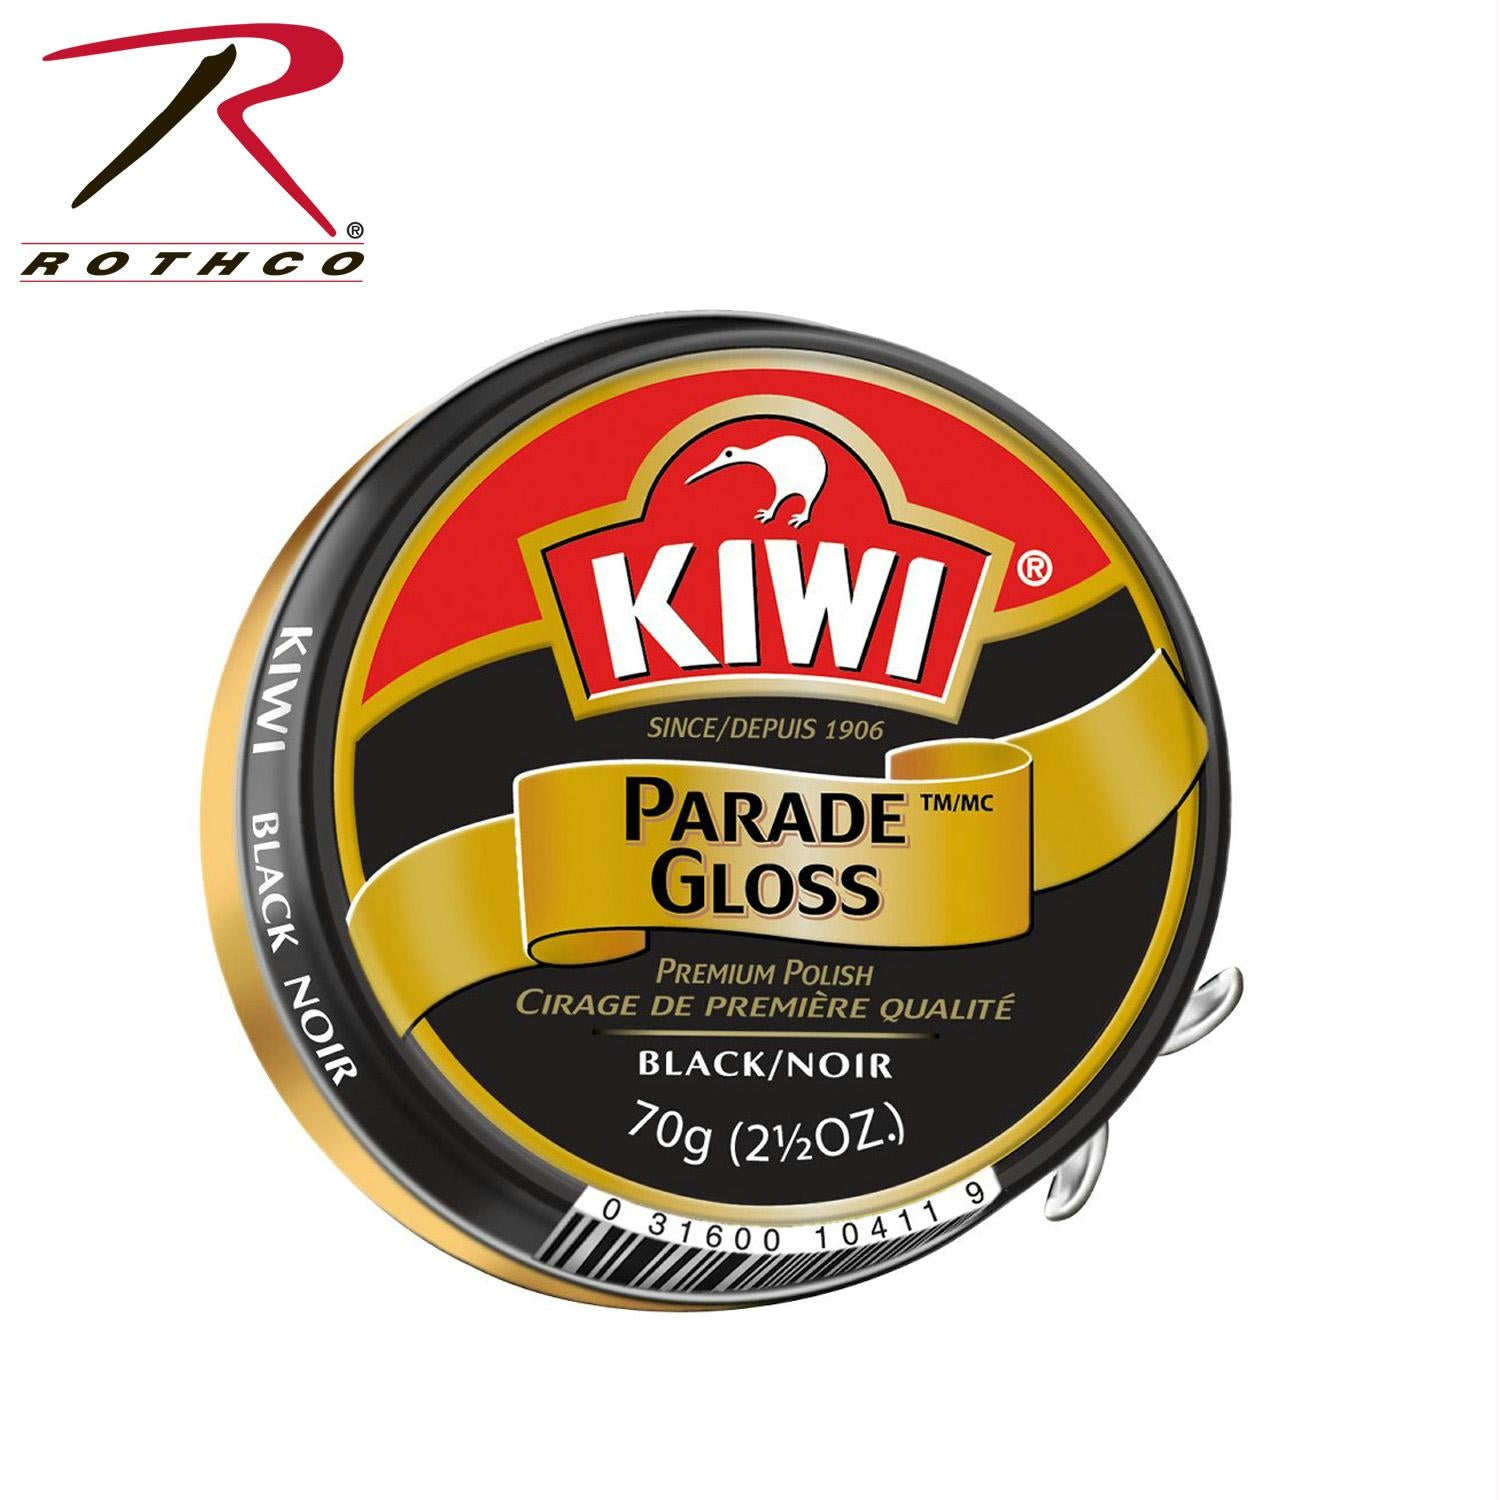 Kiwi Large Parade Gloss